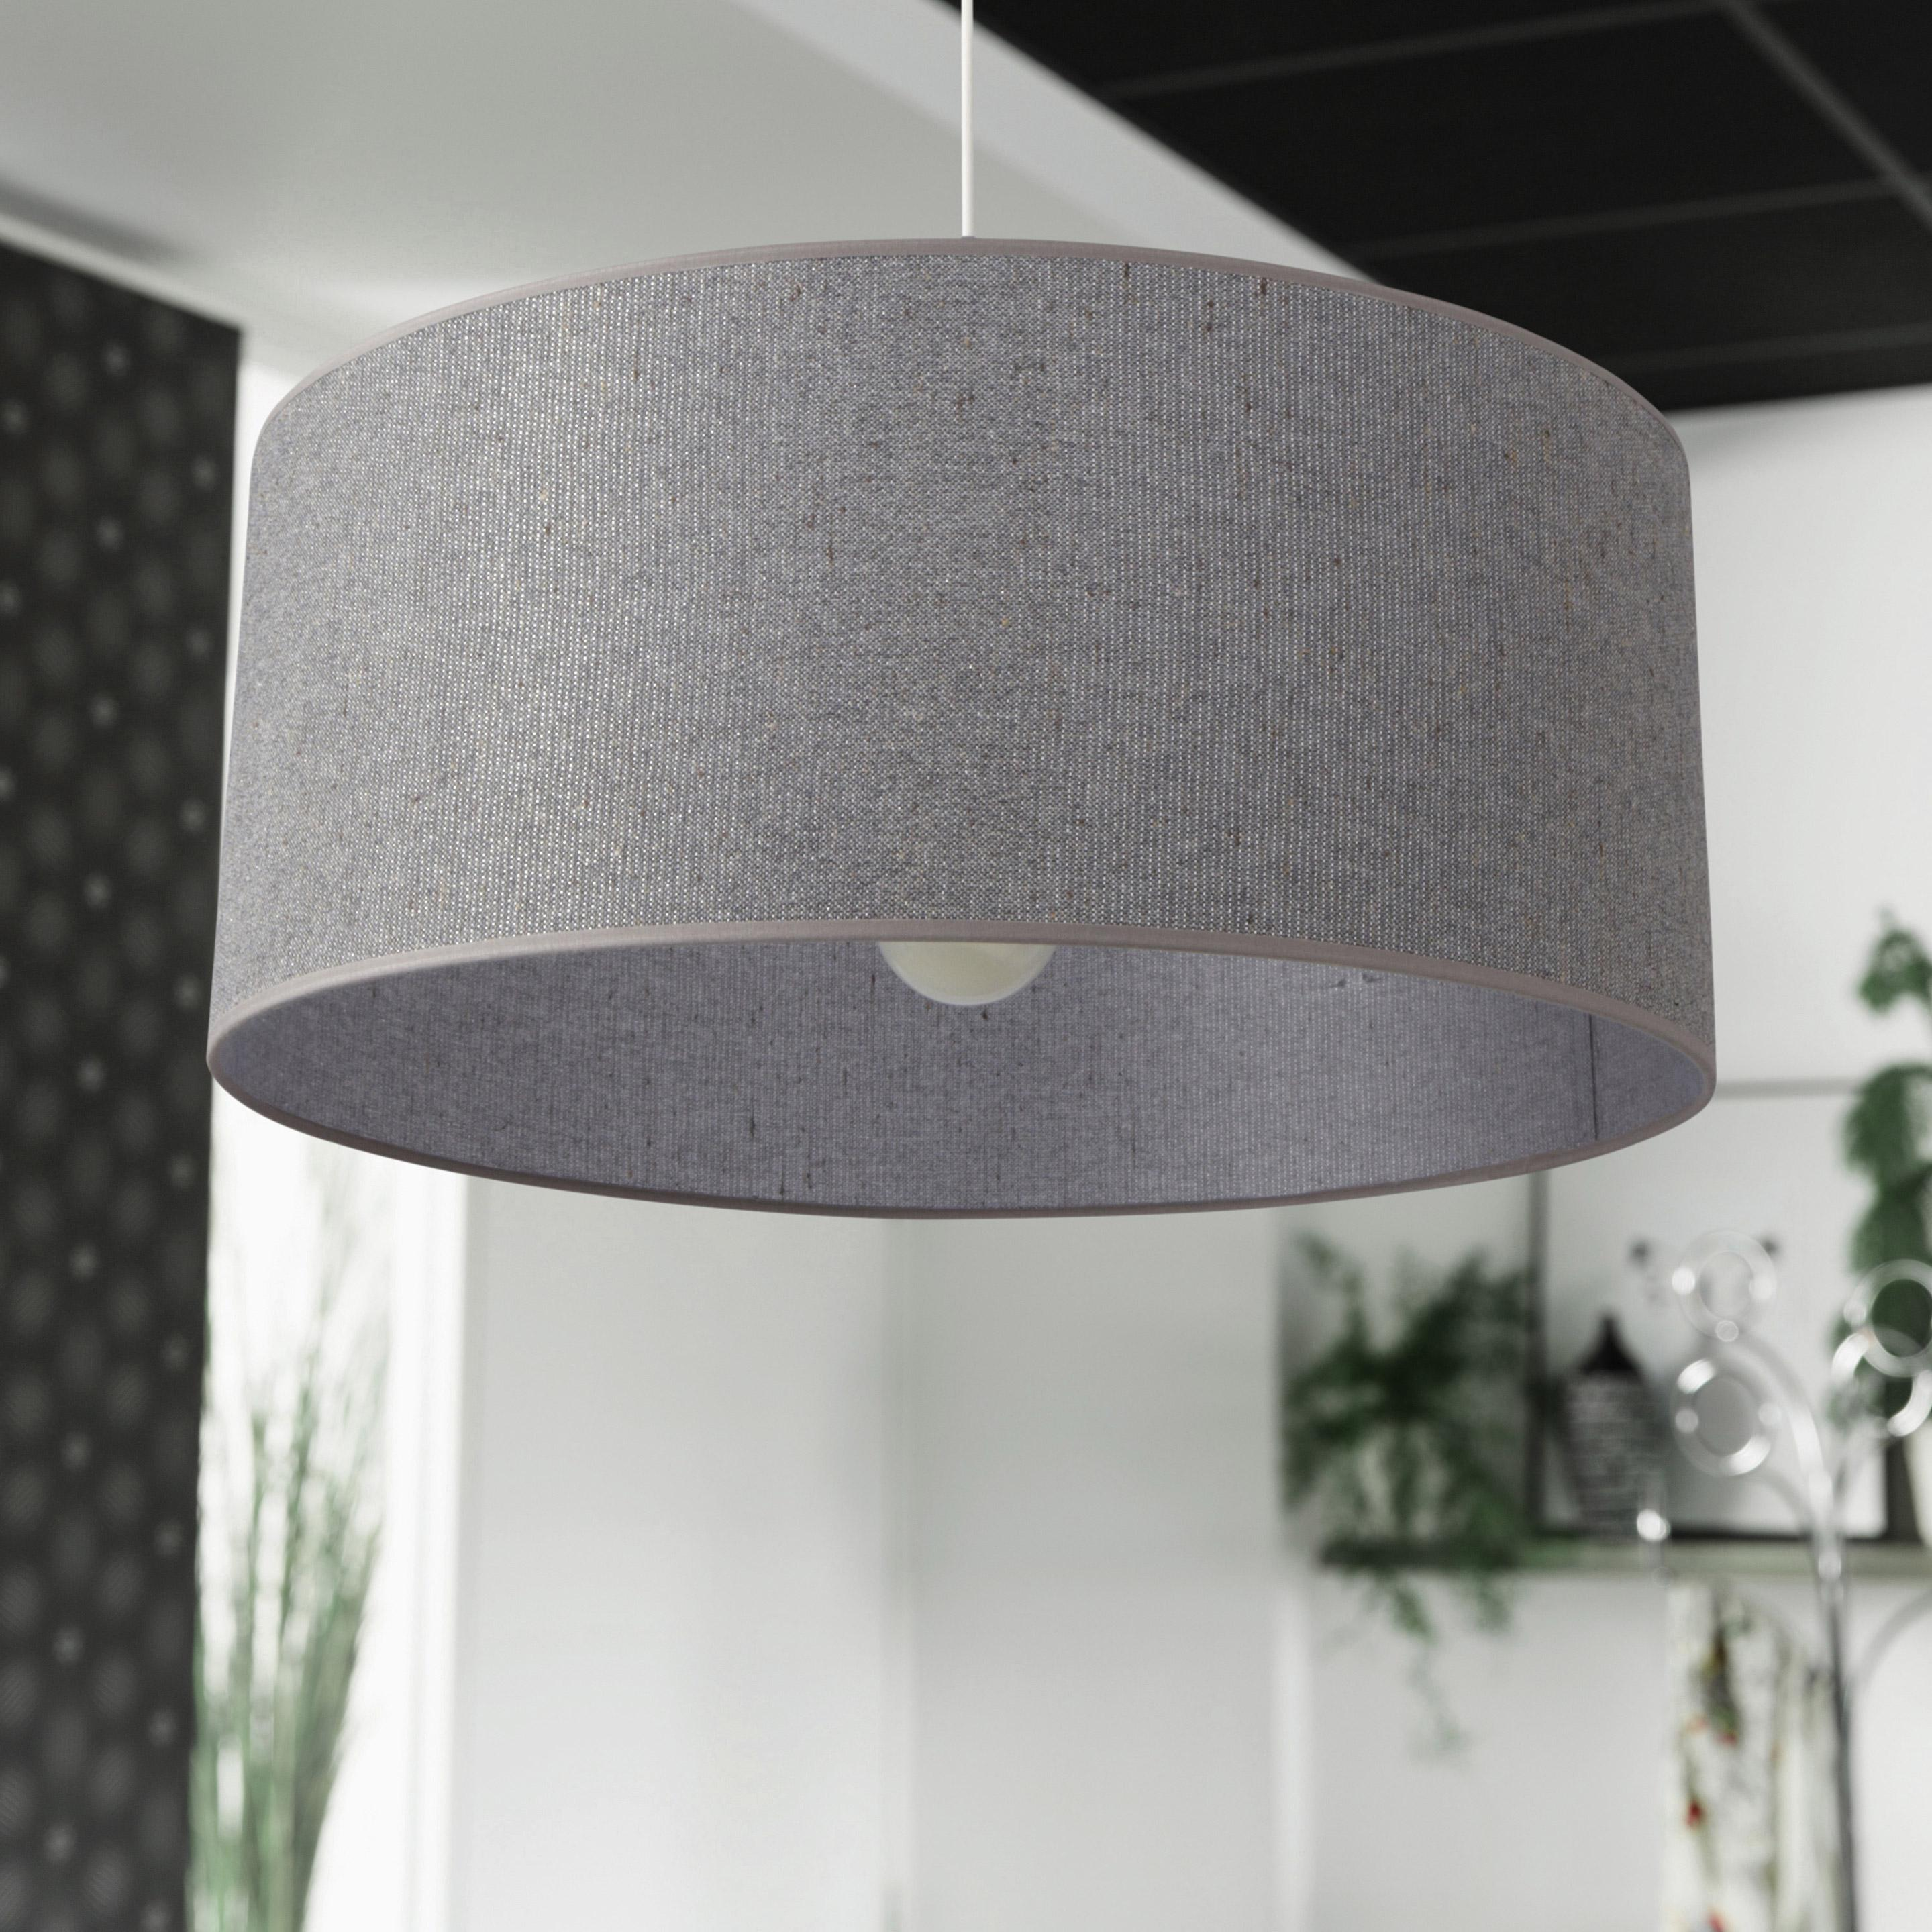 Suspension, e27 design Gris paillettes coton gris 1 x 100 W COREP